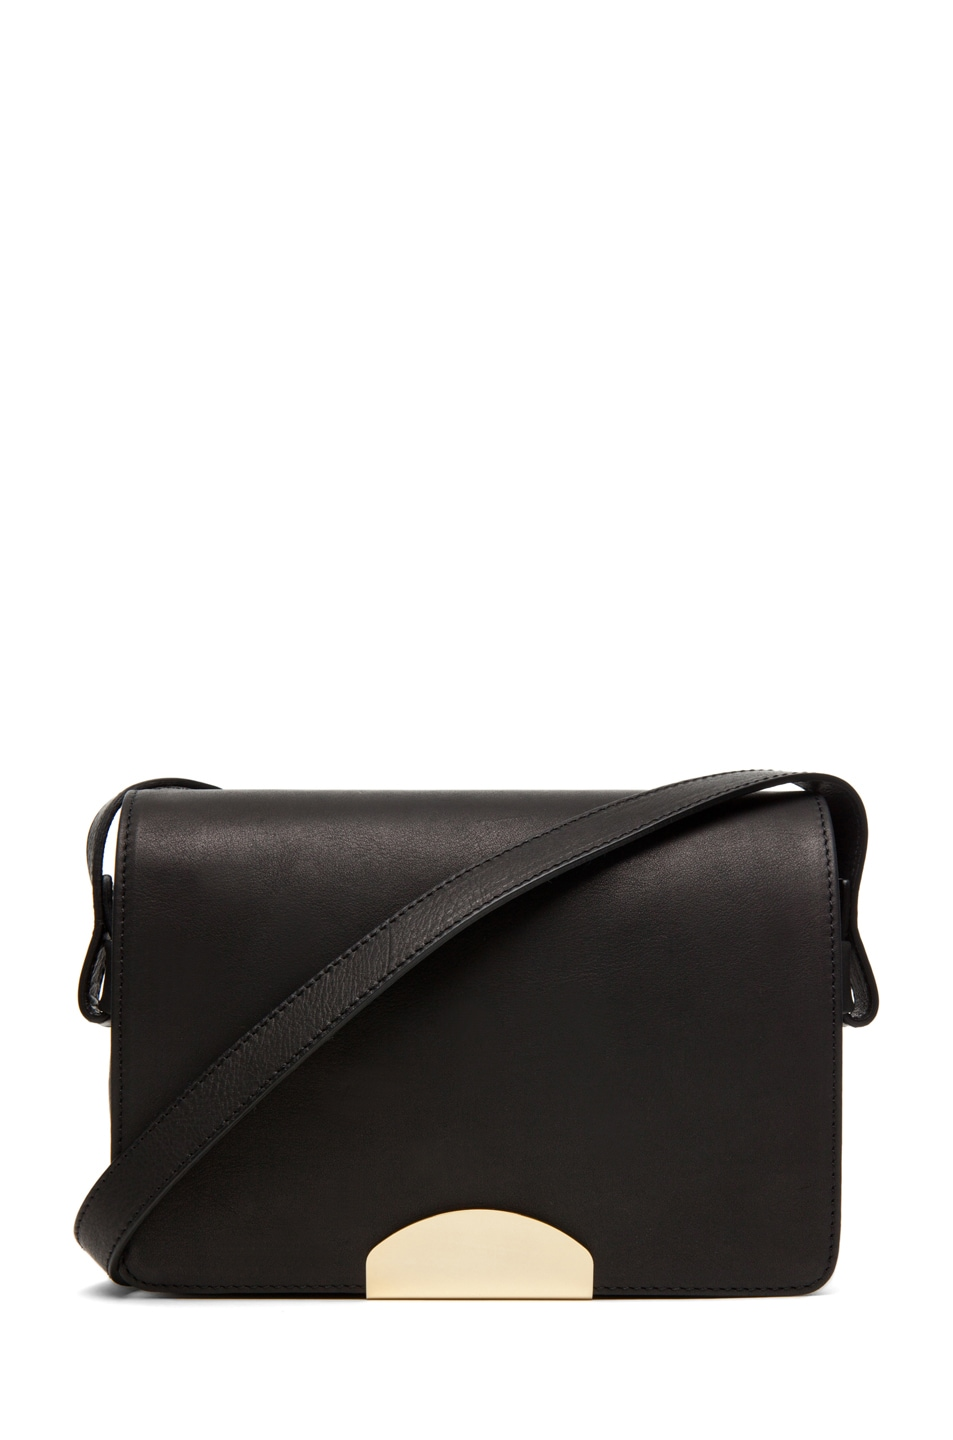 Image 1 of Maison Margiela Crossbody in Black